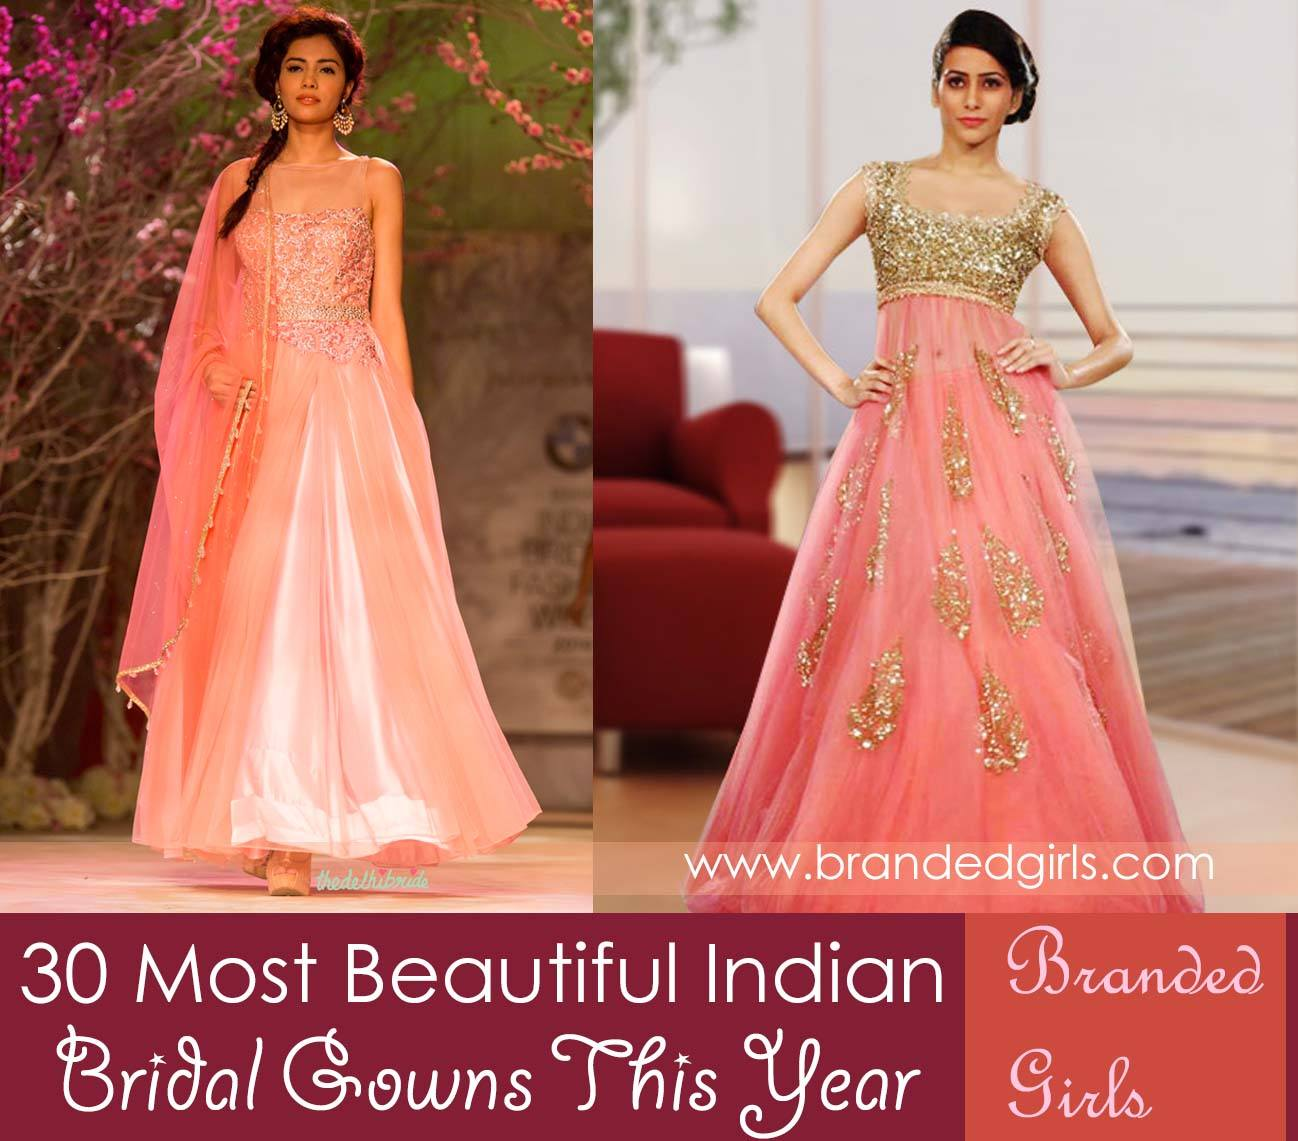 polyvore-sample-3 30 Latest Indian Bridal Gown Styles and Designs to Try this Year